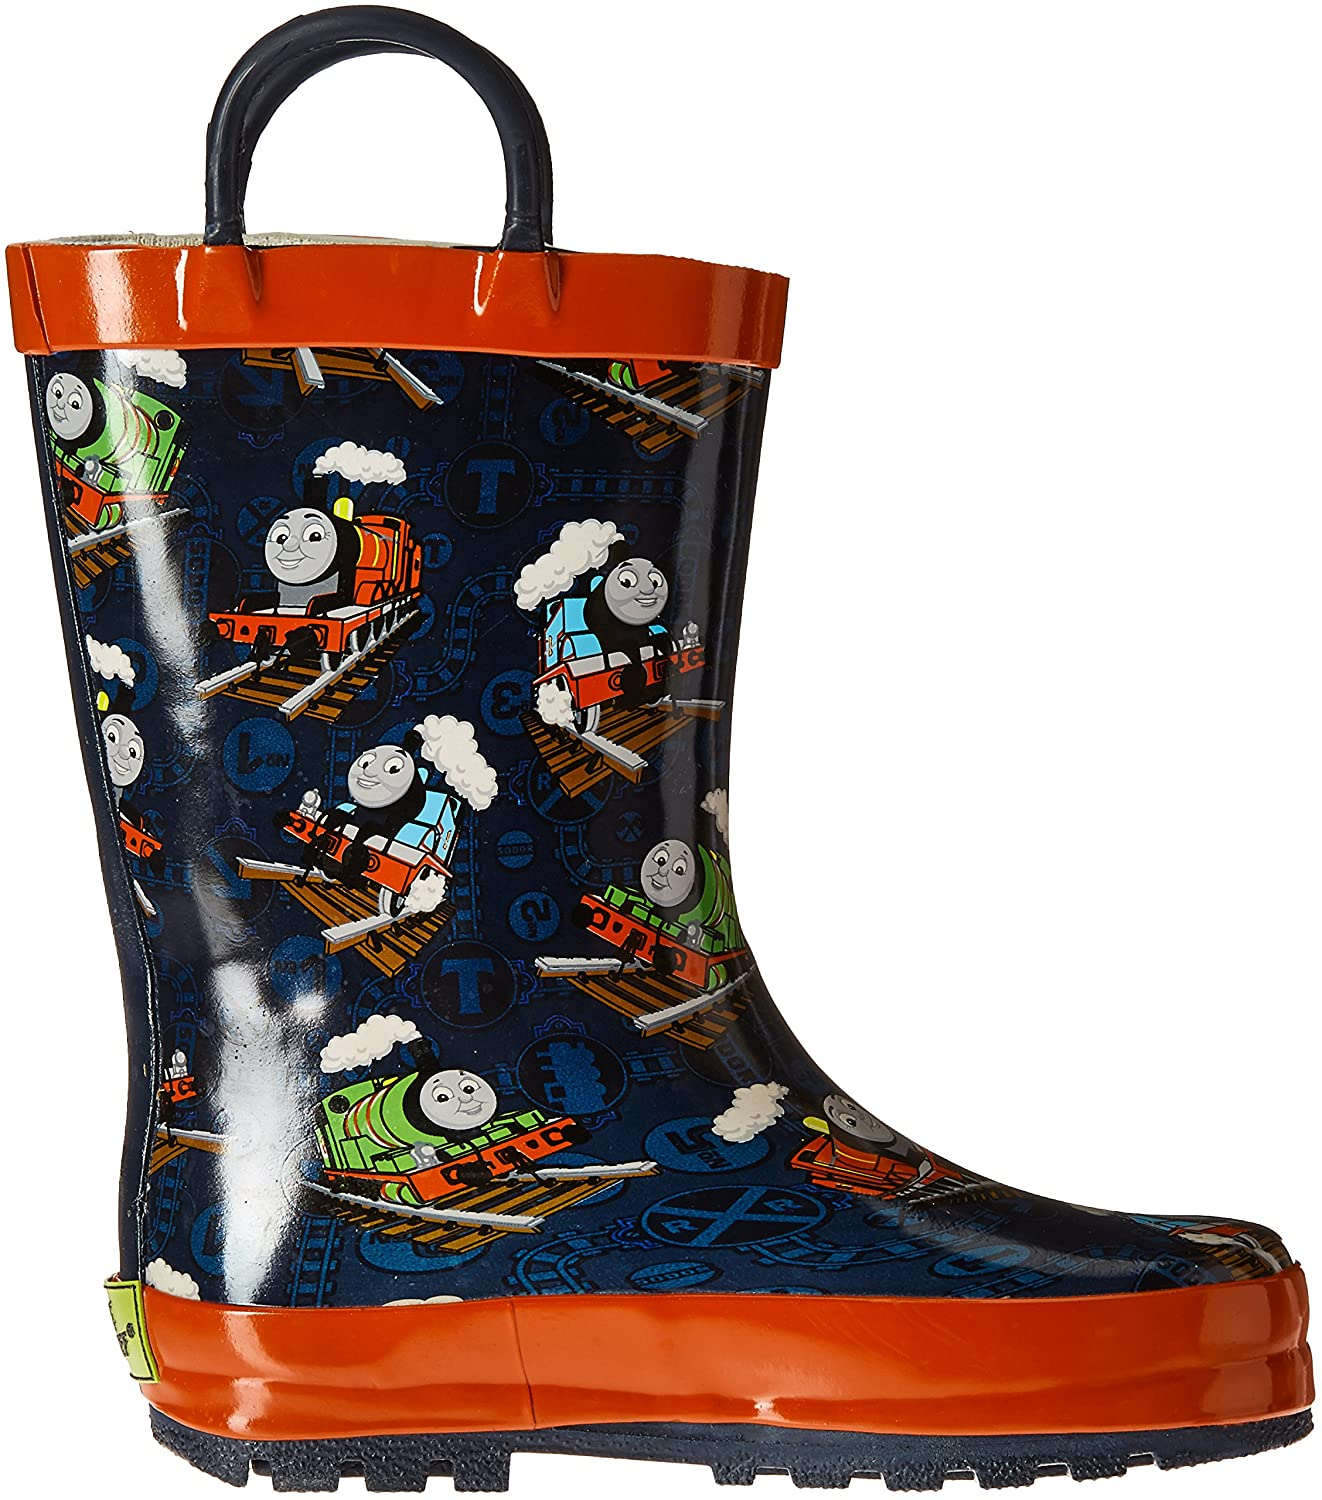 Nickelodeon Kids Waterproof Thomas and Friends Character Rain Boots with Easy on Handles 5 M US Toddler 6510031B